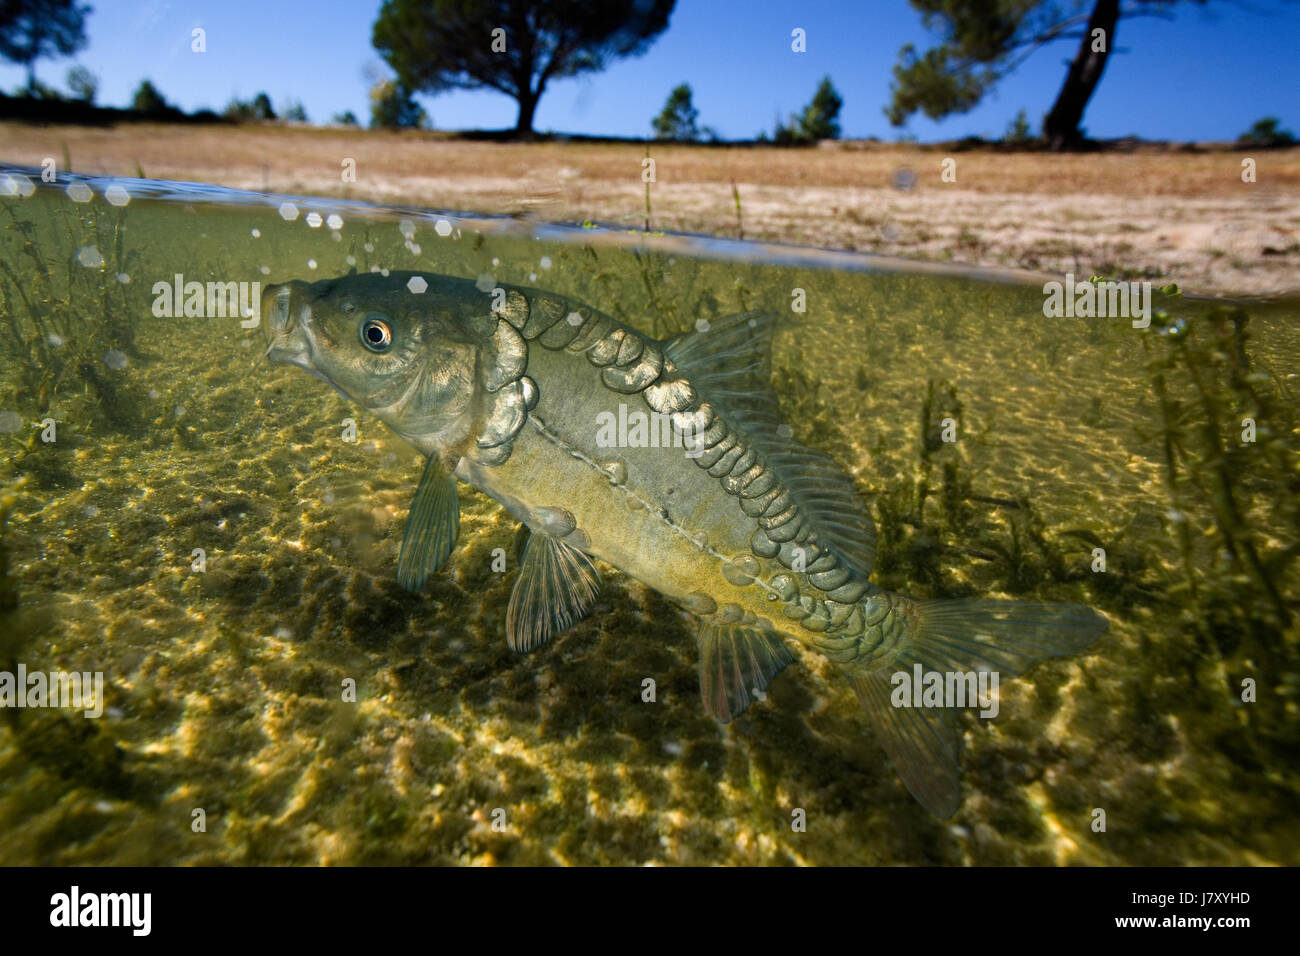 Carp, Cyprinus carpio, on lake. Mirror carp variety. Feeding at surface. Surface level view, half emerged half immersed. - Stock Image